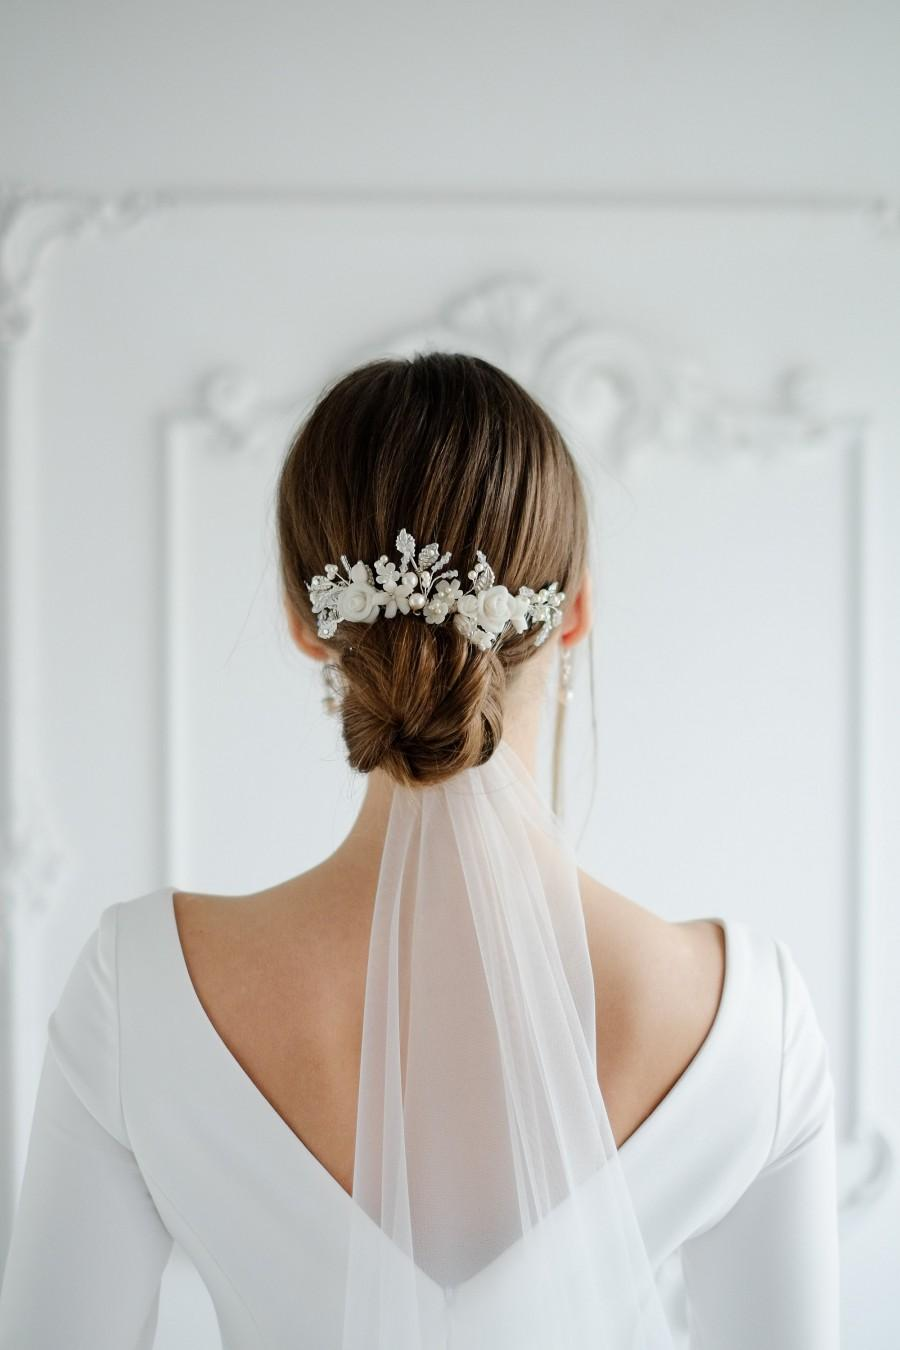 Hochzeit - Wedding headband for bride with handmade flowers. Bridal hair piece. Bridal comb with Swarovski pearls and crystals. Gift for bride to be